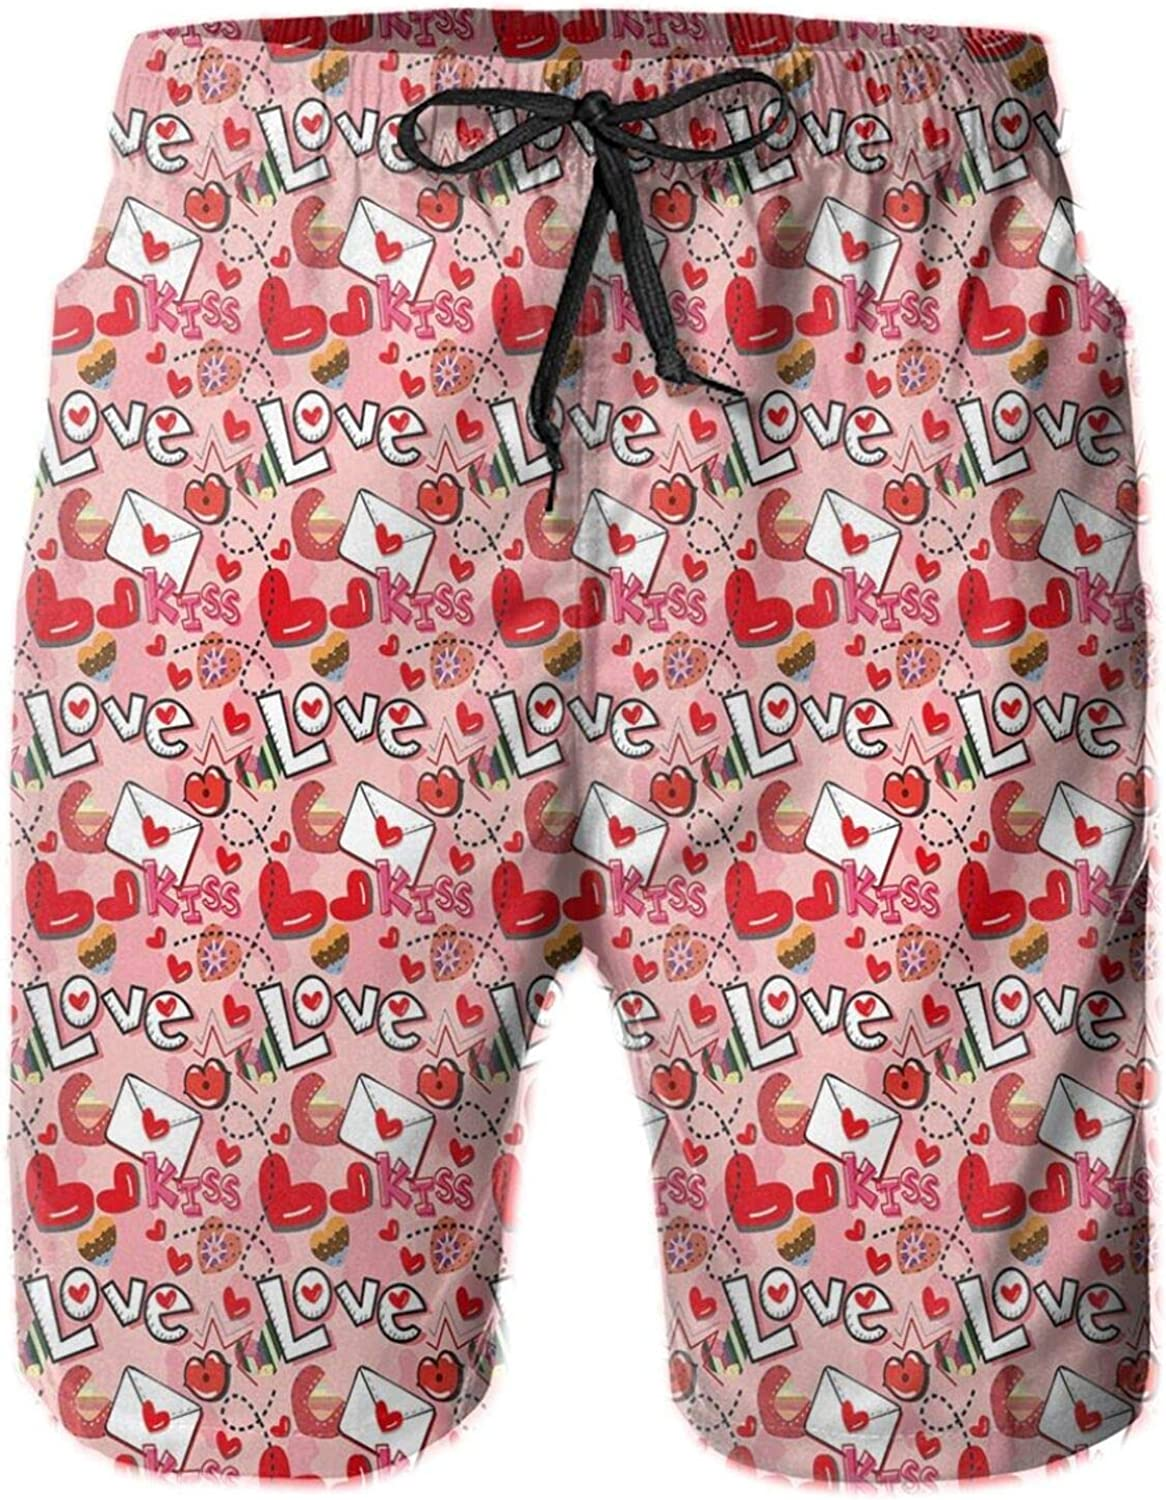 Crazy Love Theme Valentines Hearts and Kisses Envelopes Letters Girls Cartoon Pattern Swimming Trunks for Men Beach Shorts Casual Style,XXL